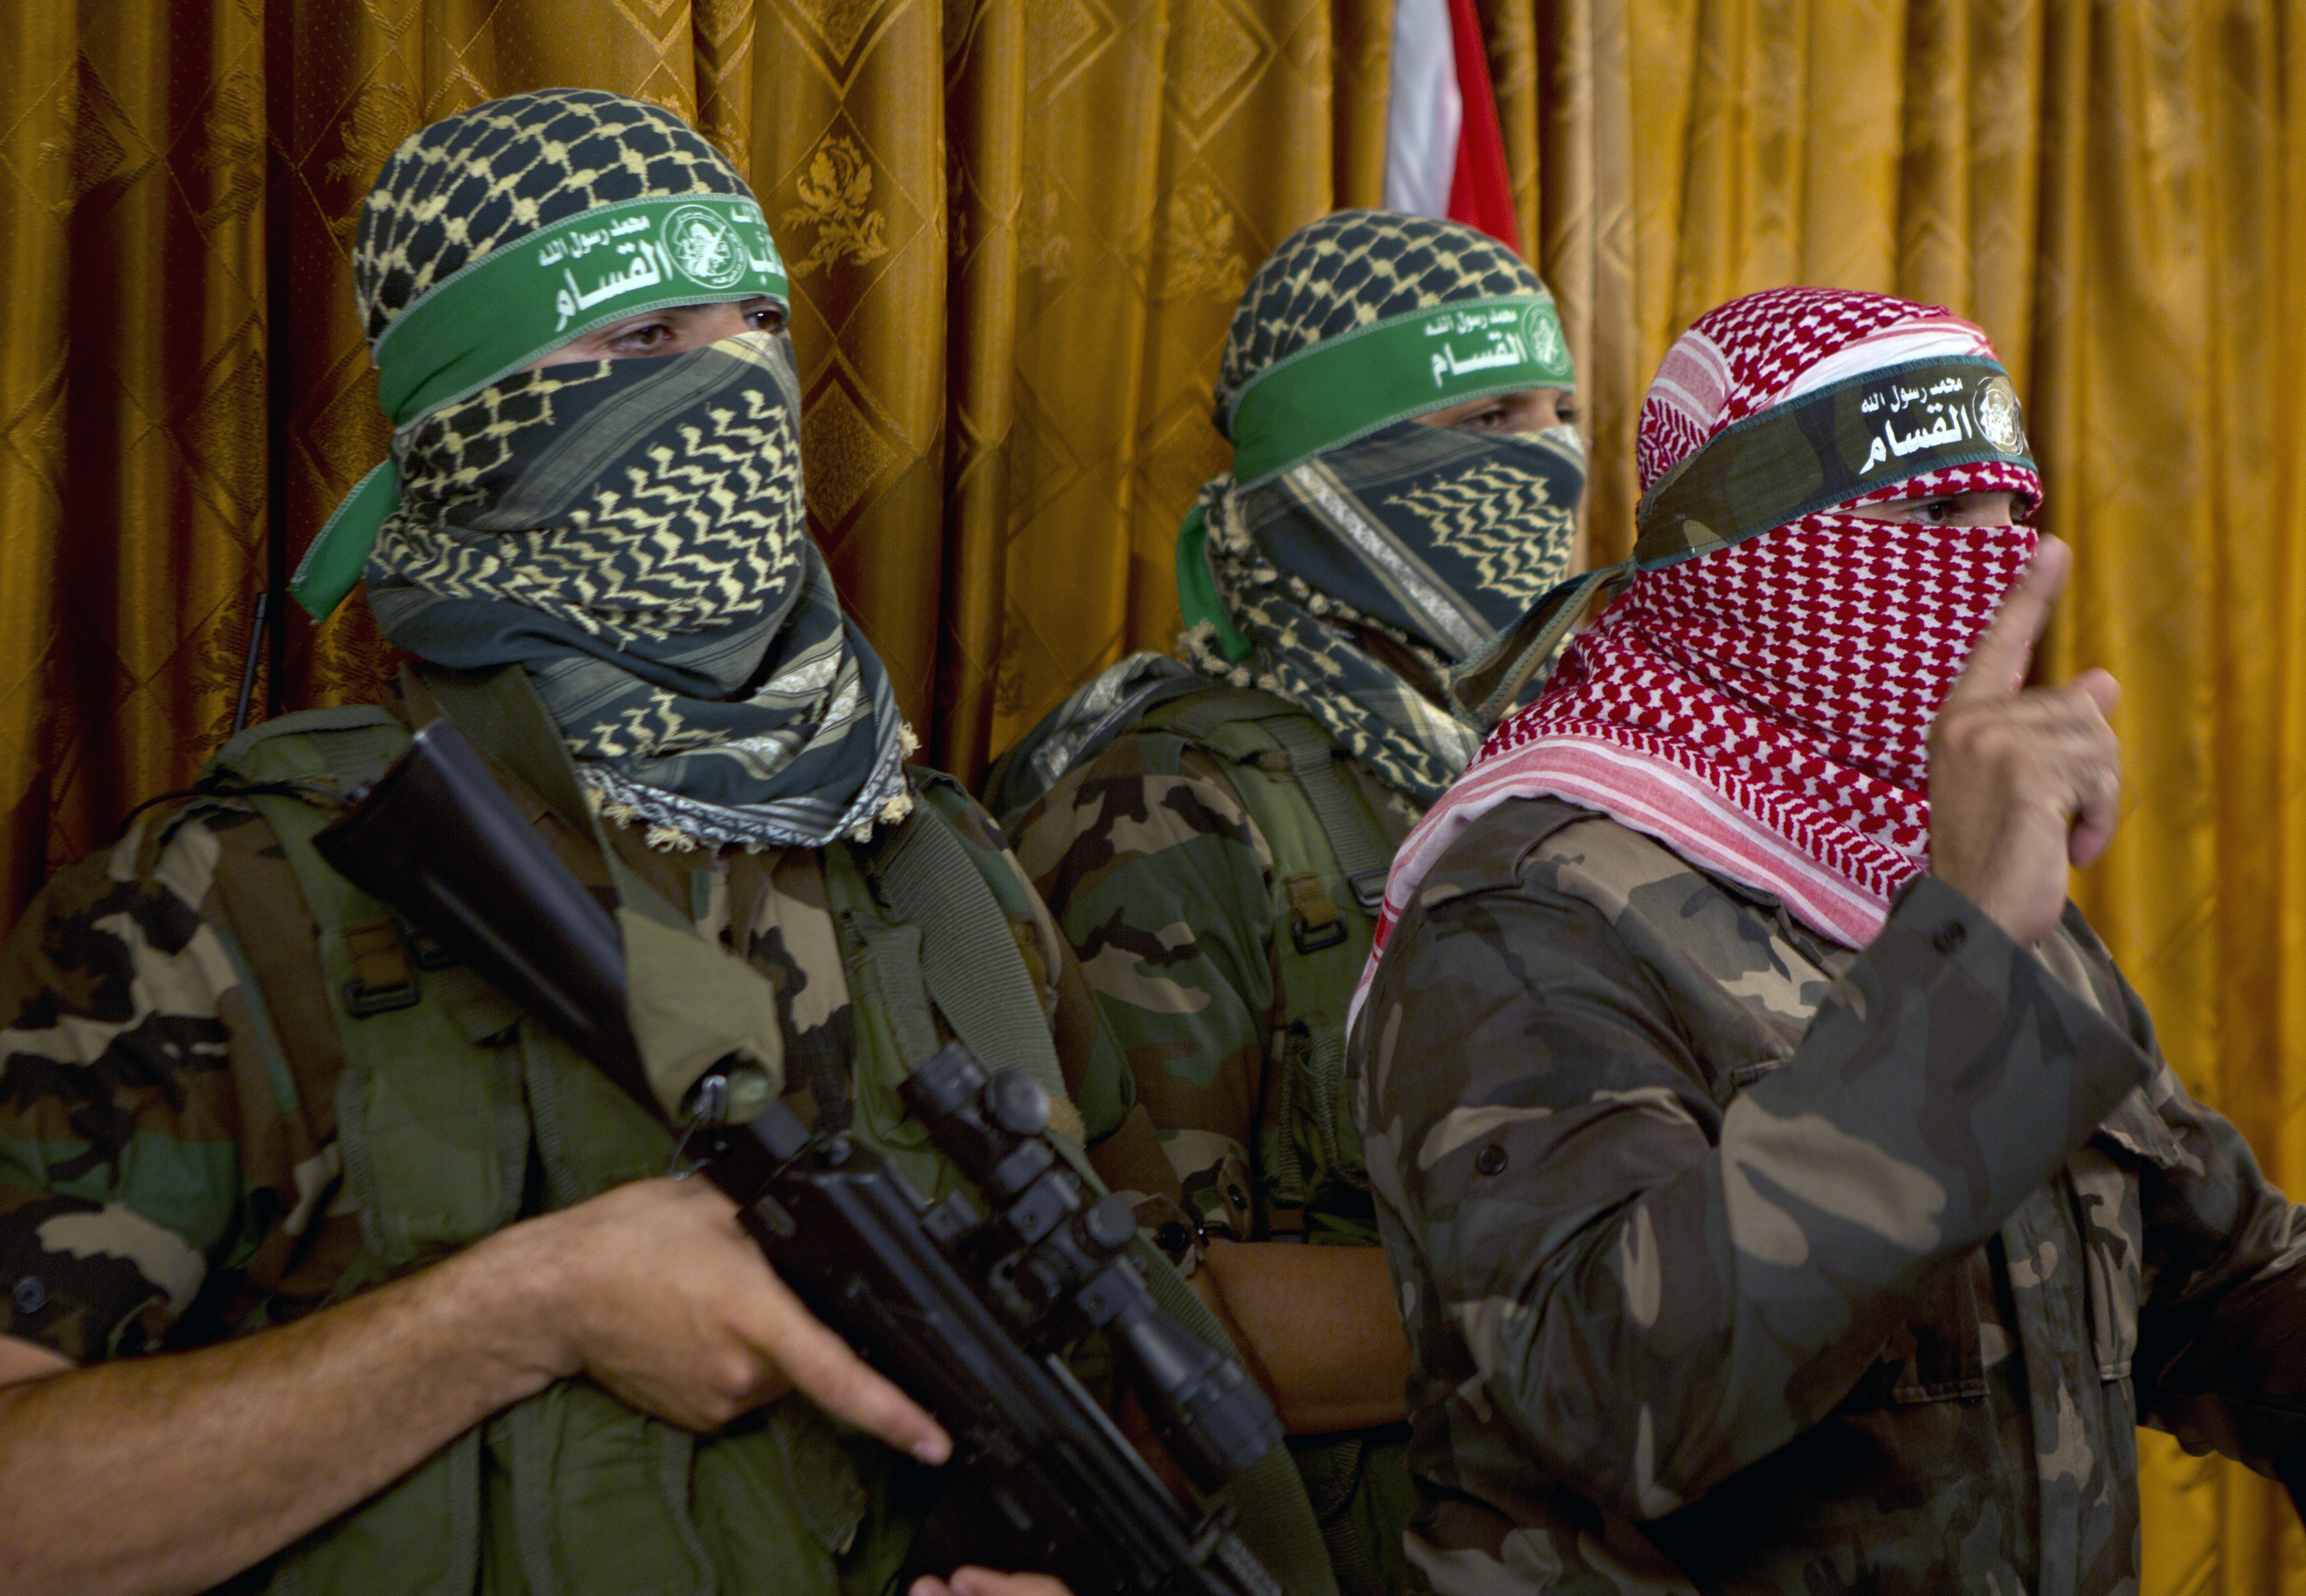 Abu Obeida, right, the official spokesperson of the Palestinian militant group Ezzedine al-Qassam brigade, the armed wing of Hamas, give a press conference on July 3, 2014 in Gaza City.